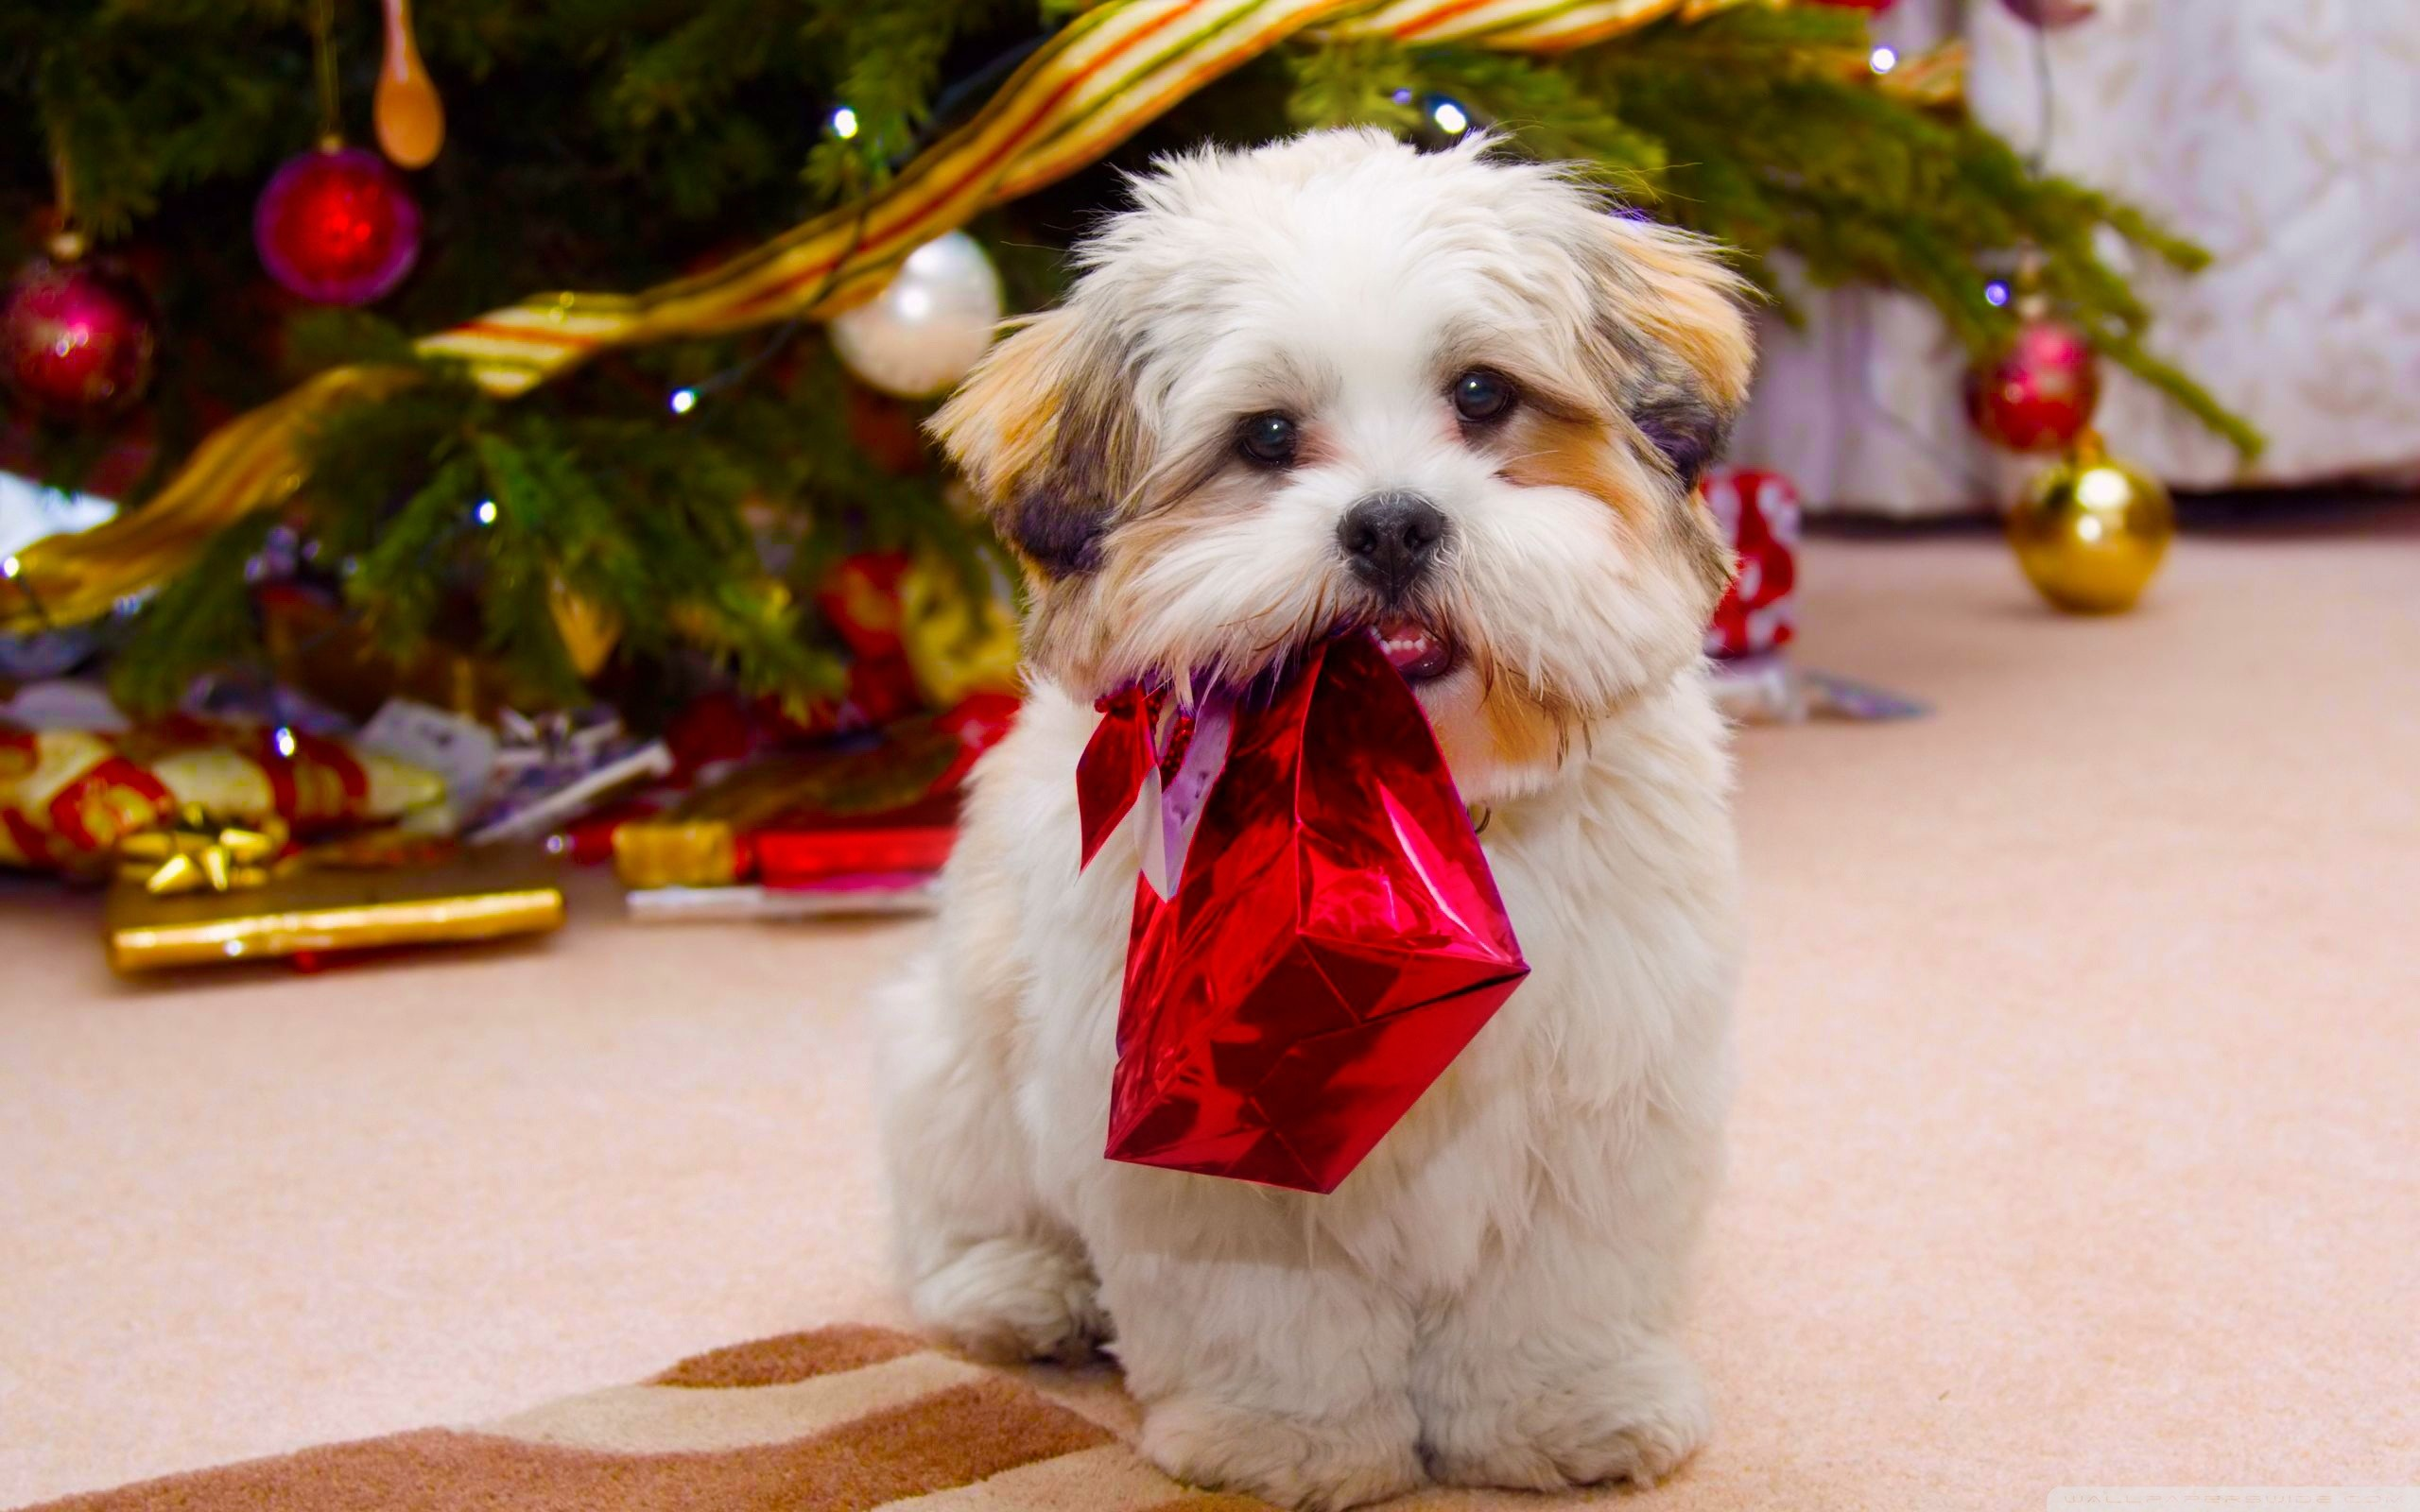 2560x1600 Christmas Puppy Wallpapers For Iphone